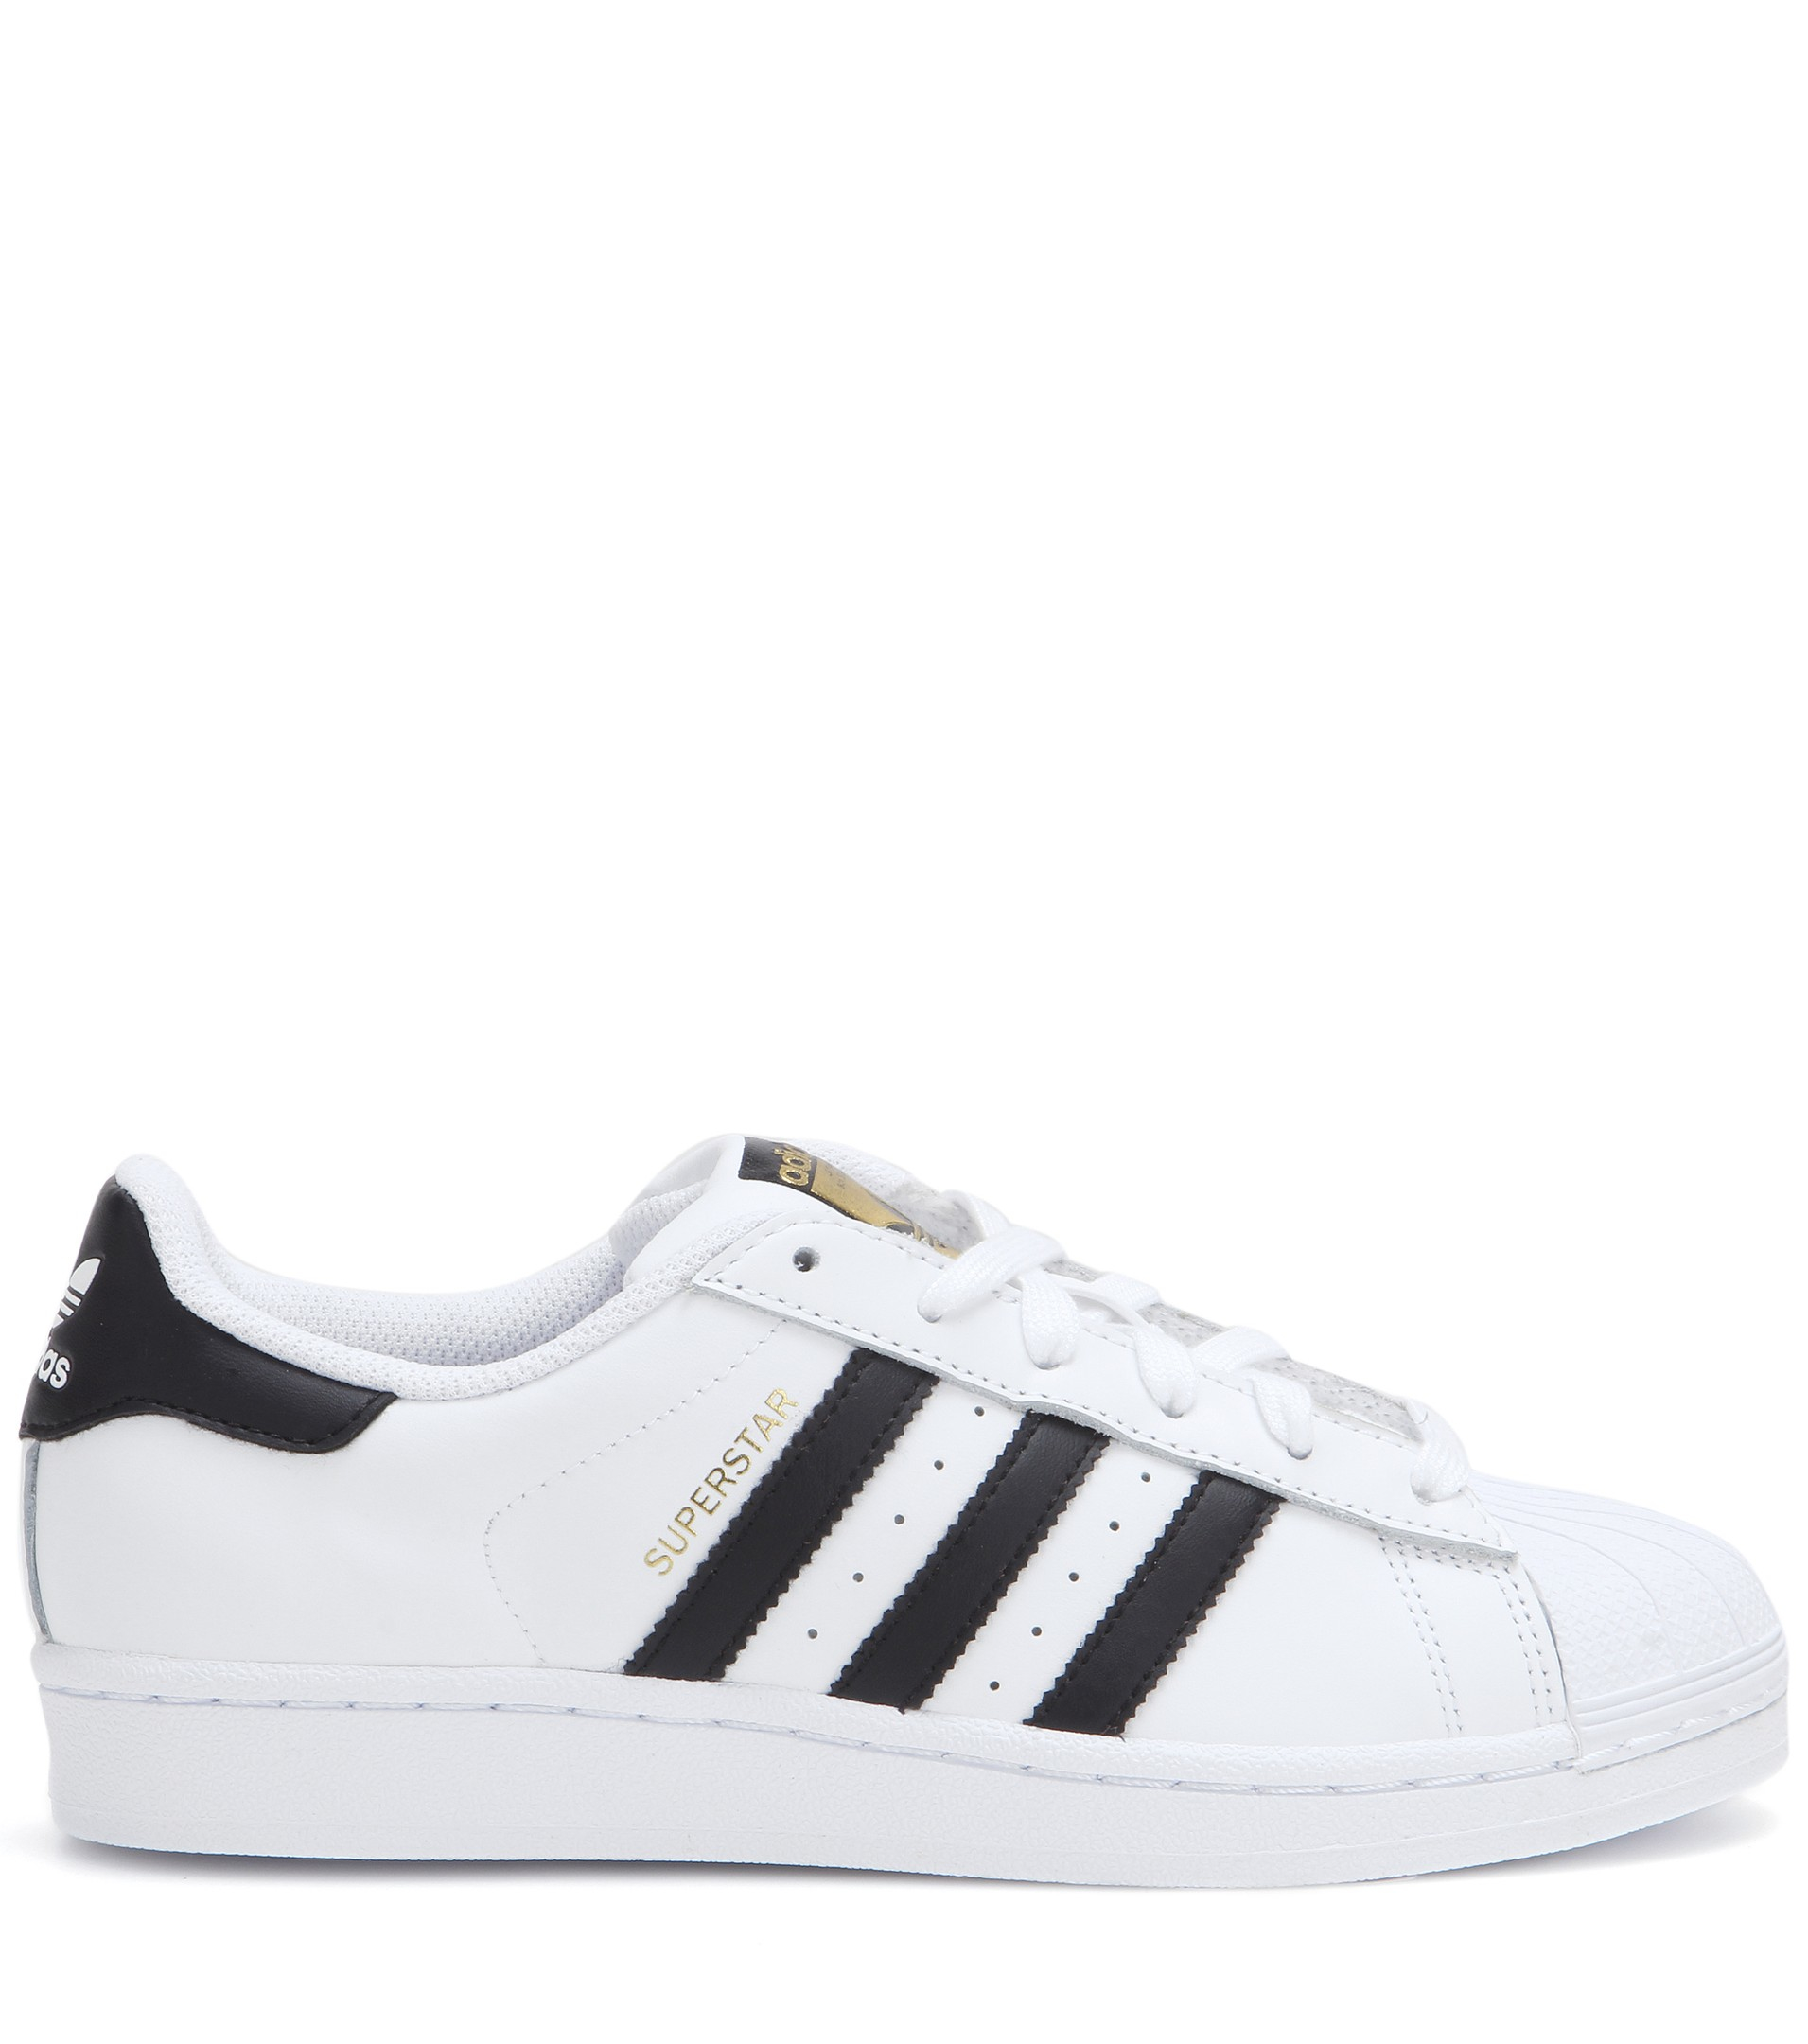 1afa8d4cf adidas Superstar Leather Sneakers in White - Lyst